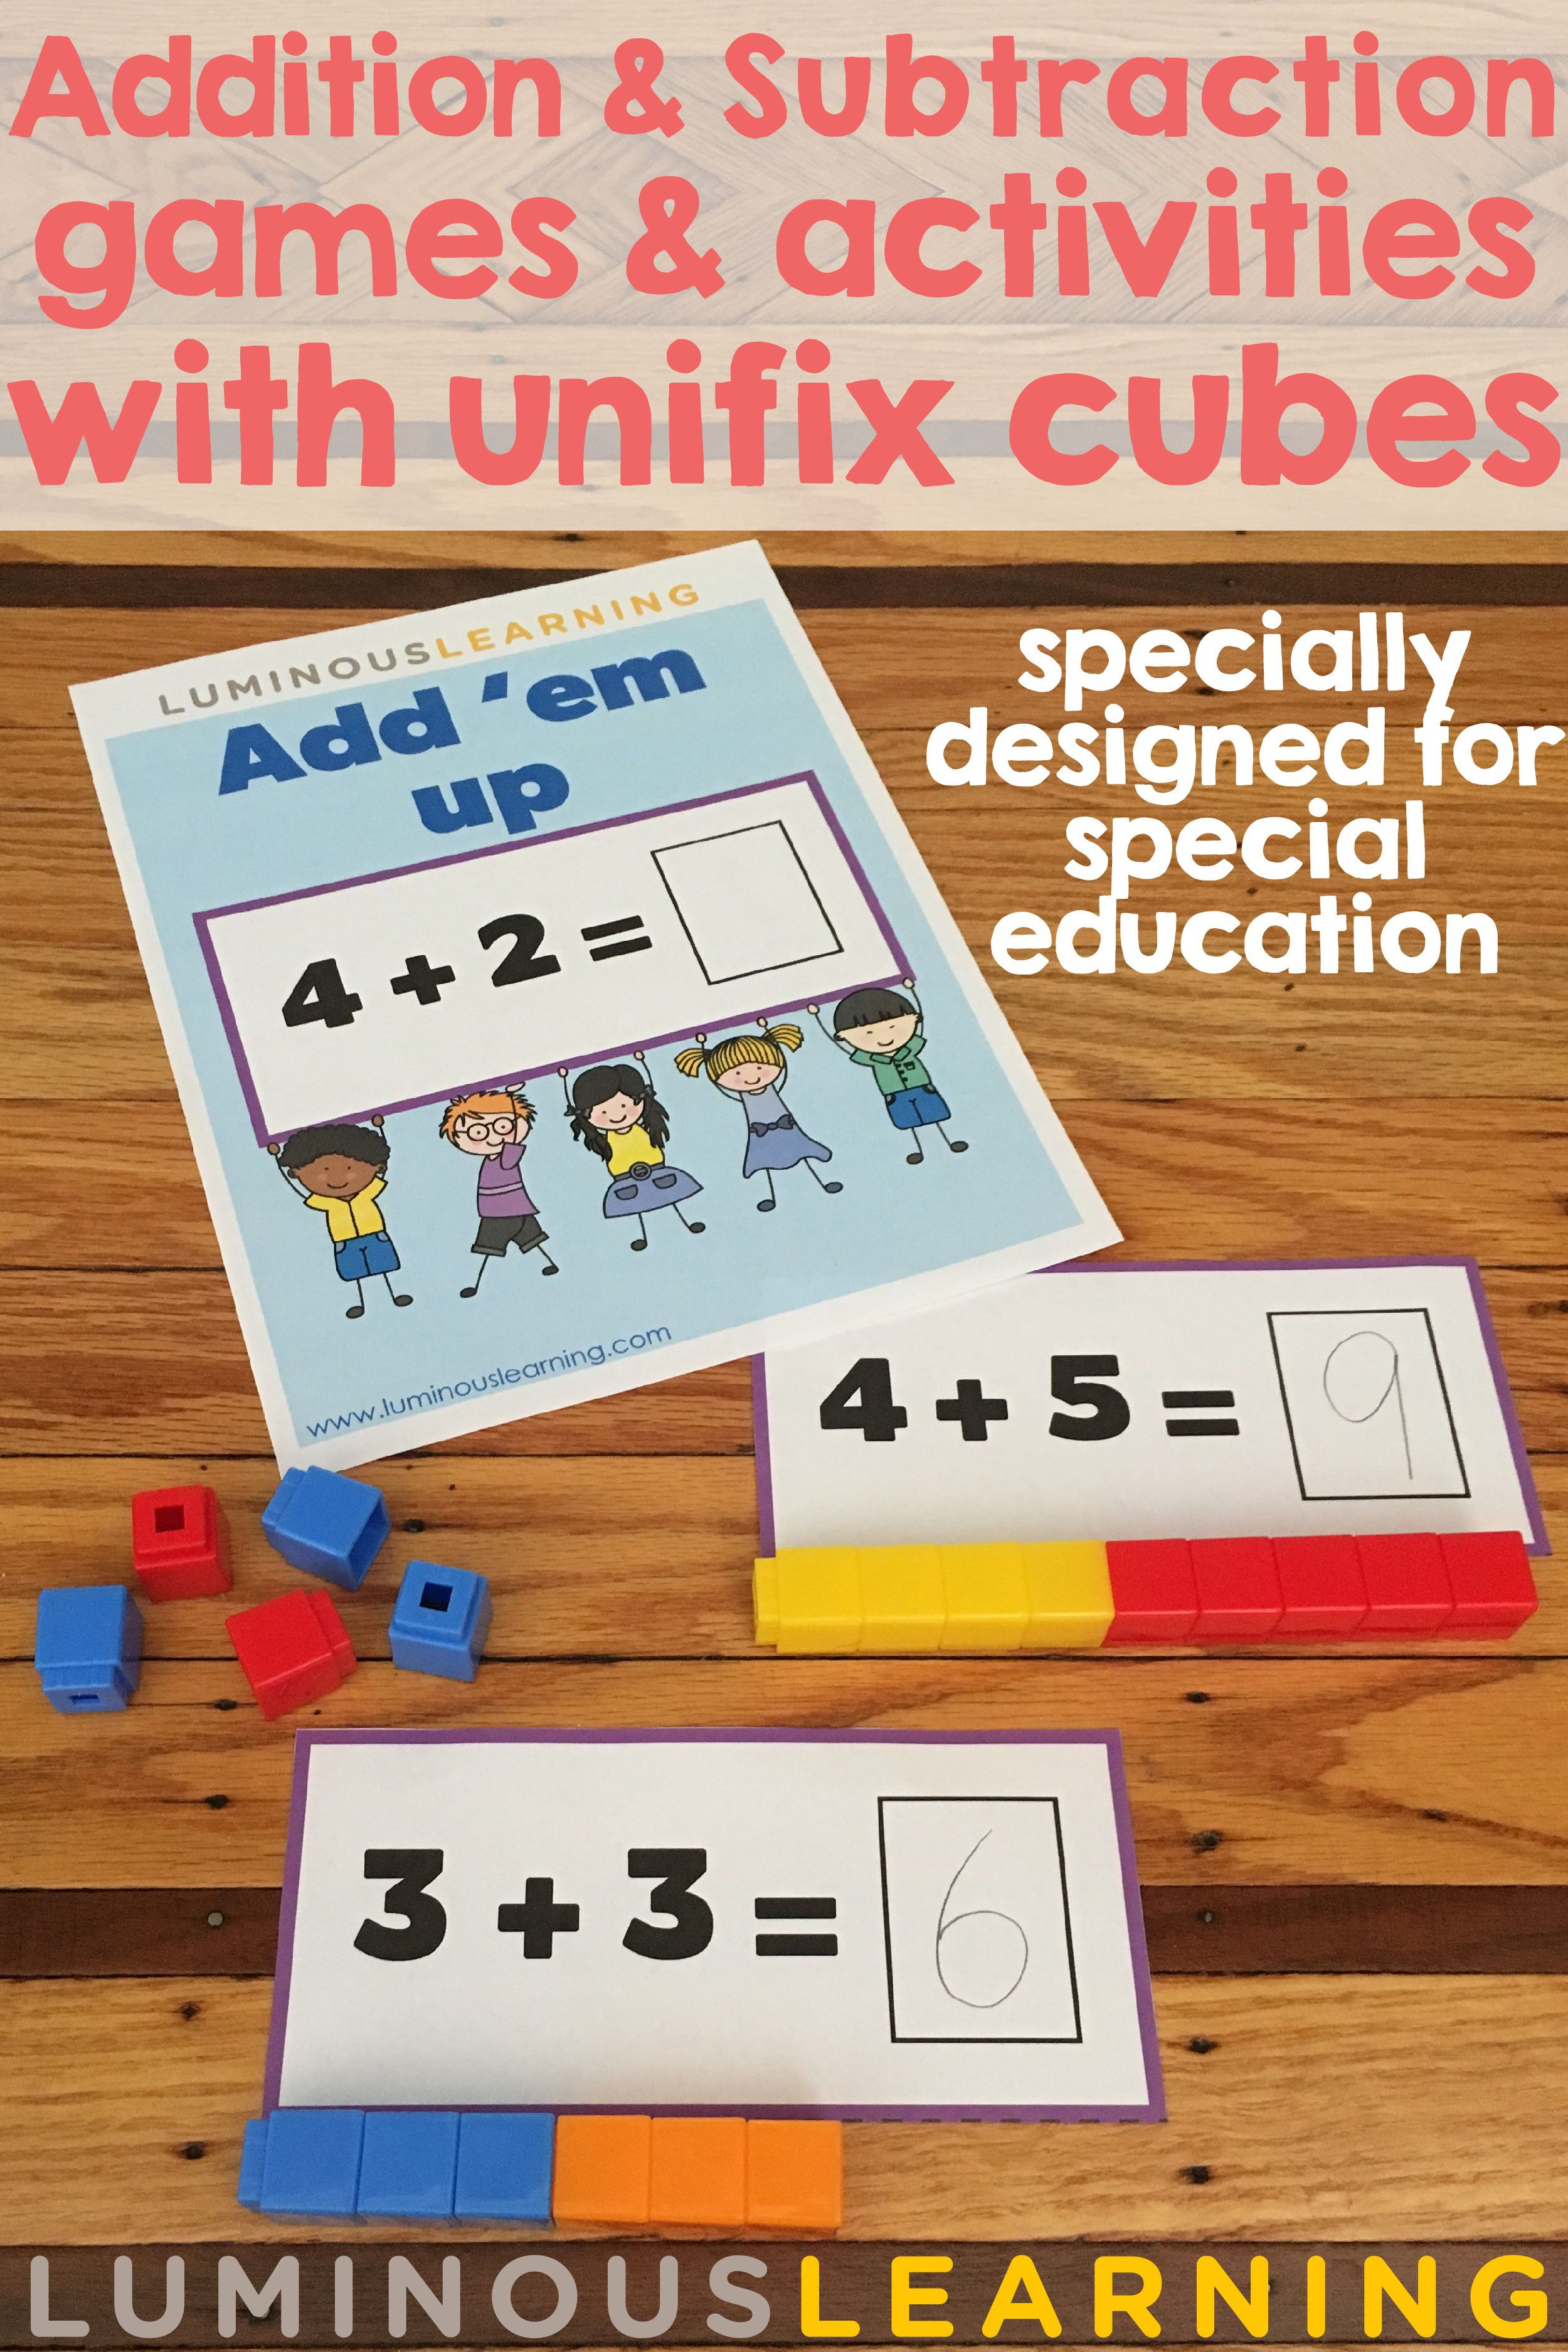 Addition And Subtraction Games And Activities Grades K 1 Unifix Cube Activities Subtraction Games Addition And Subtraction Addition and subtraction game for grade